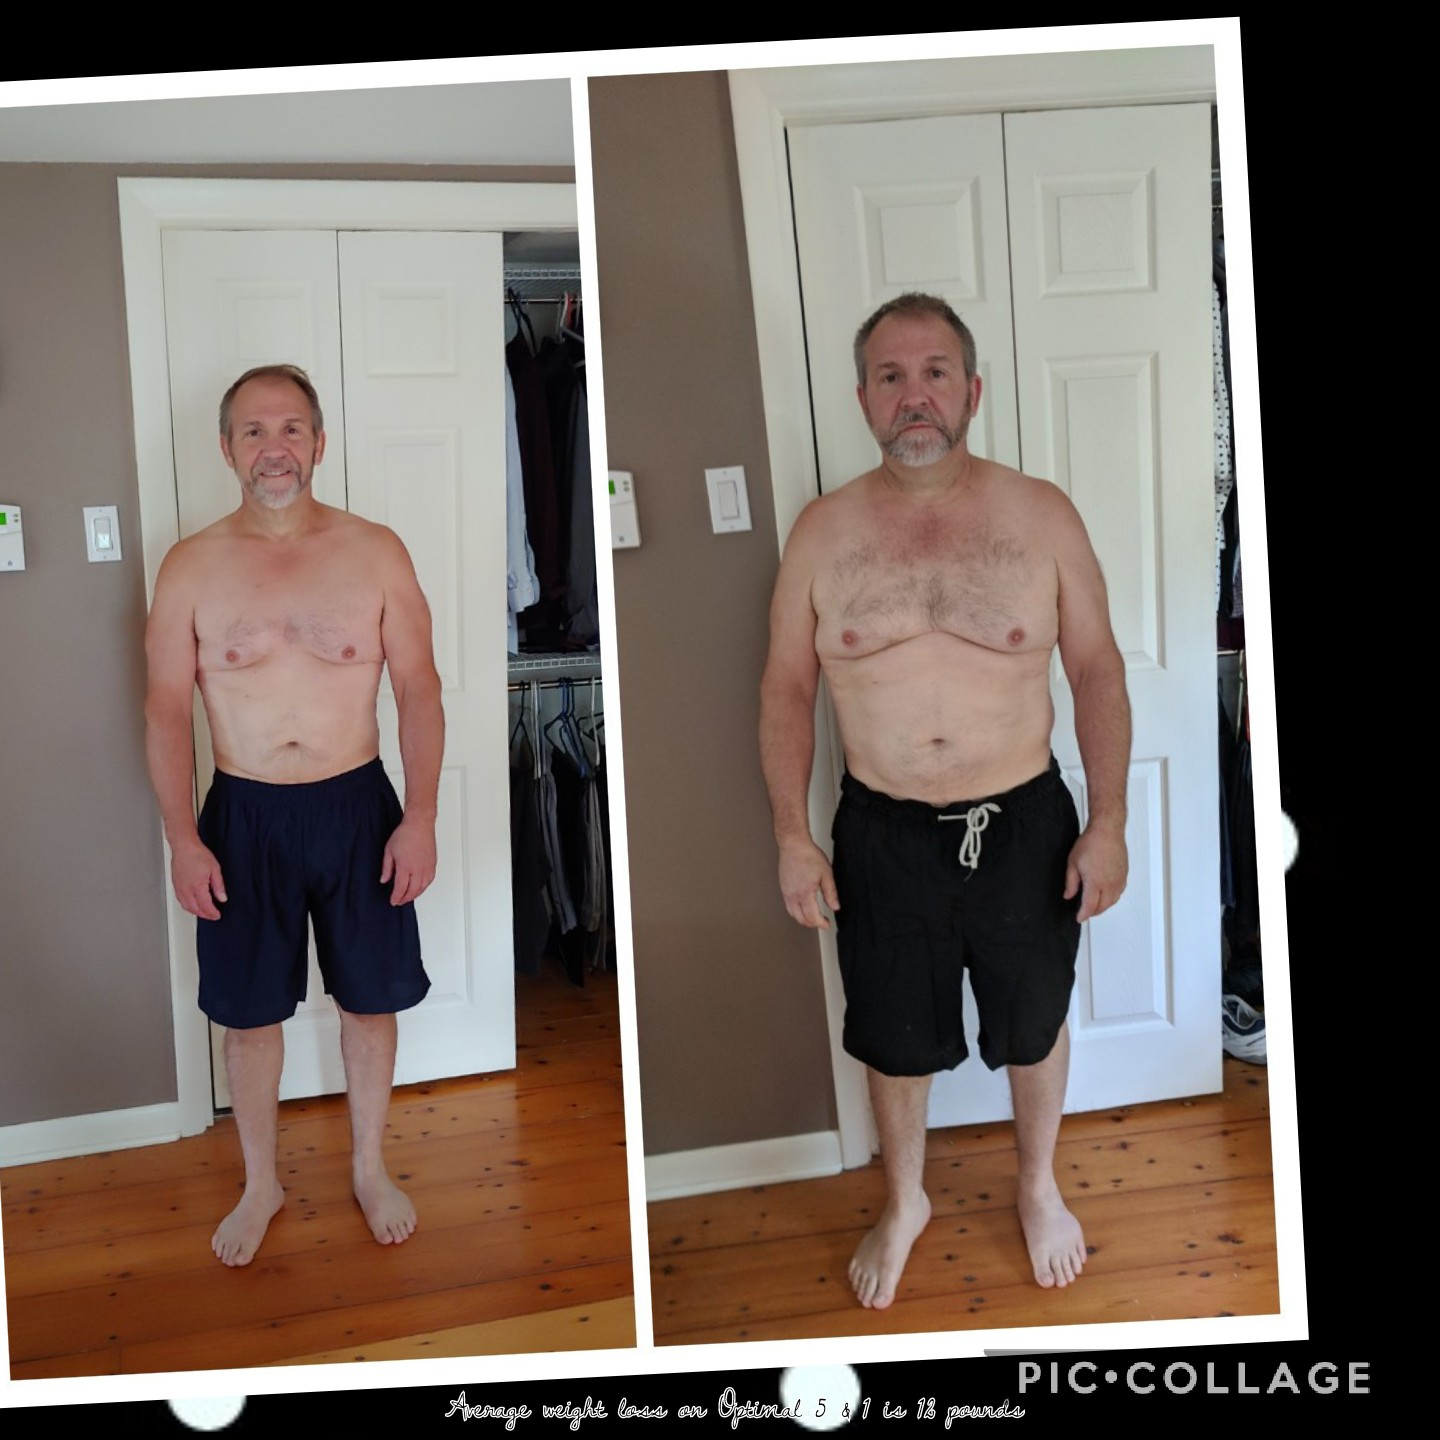 Joe CAME TO ME LOOKING TO GET FIT. AFTER A FEW MONTHS OF TRAINING, HE IS STRONGER AND FEELS GREAT! -